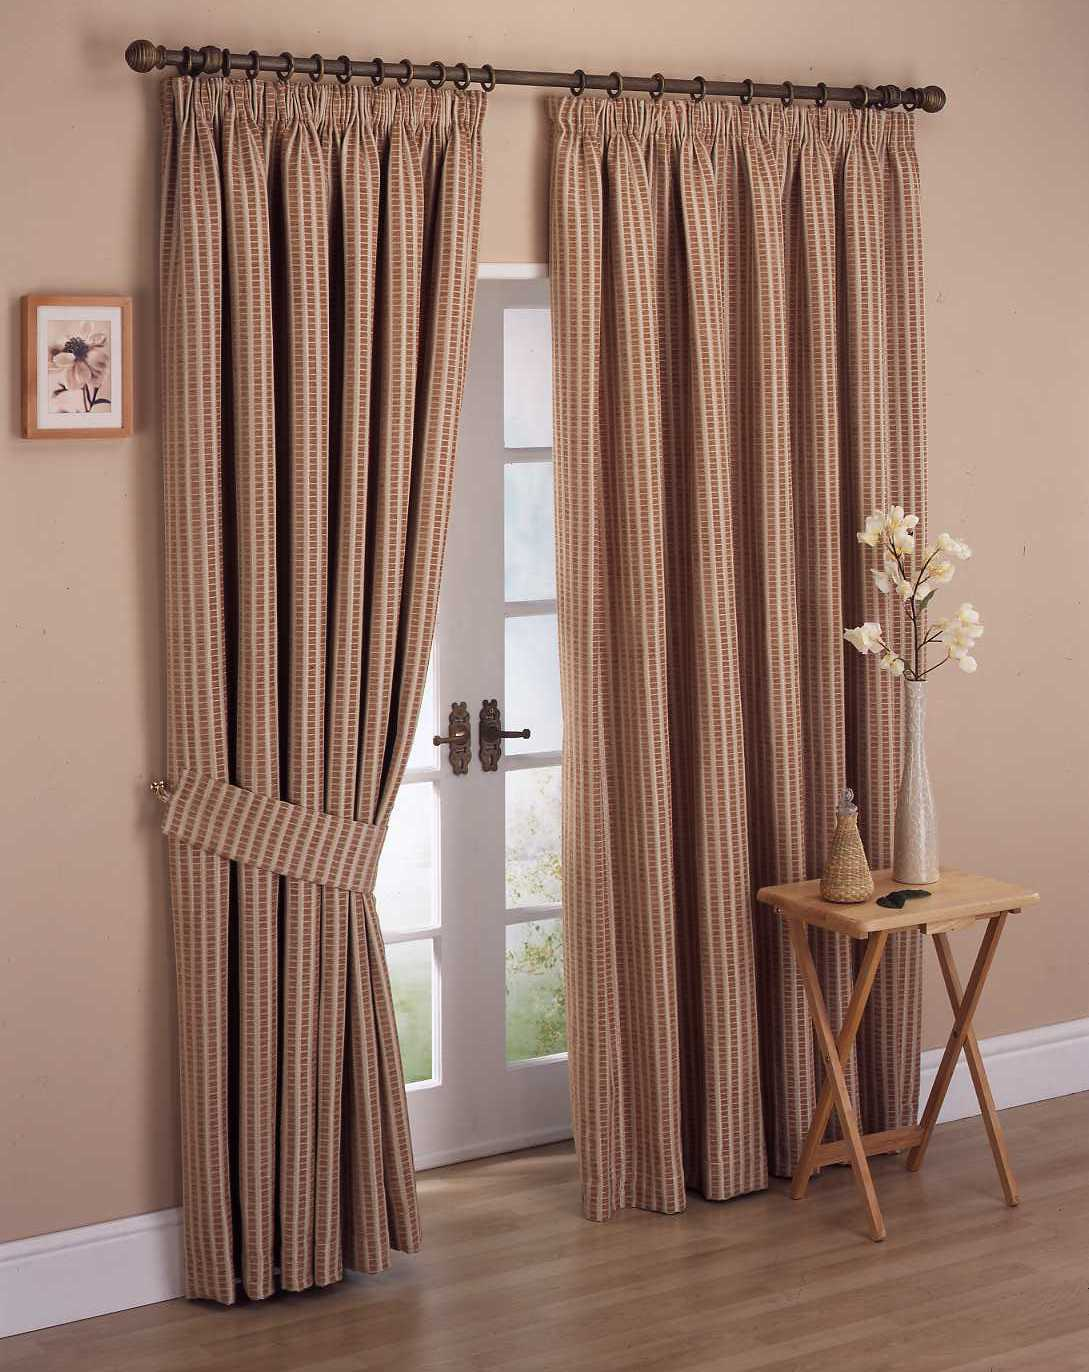 Top catalog of classic curtains designs 2013 - Windows curtains design ...